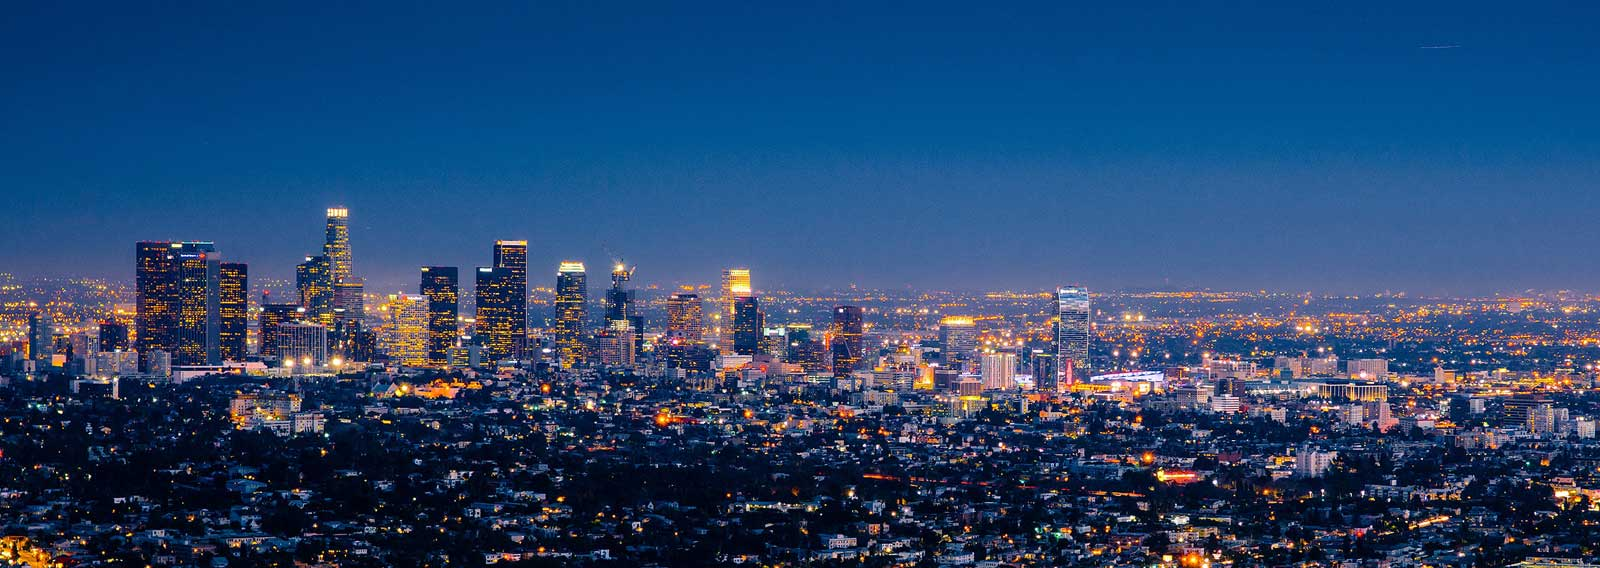 Los Angeles at Night - Featured Work